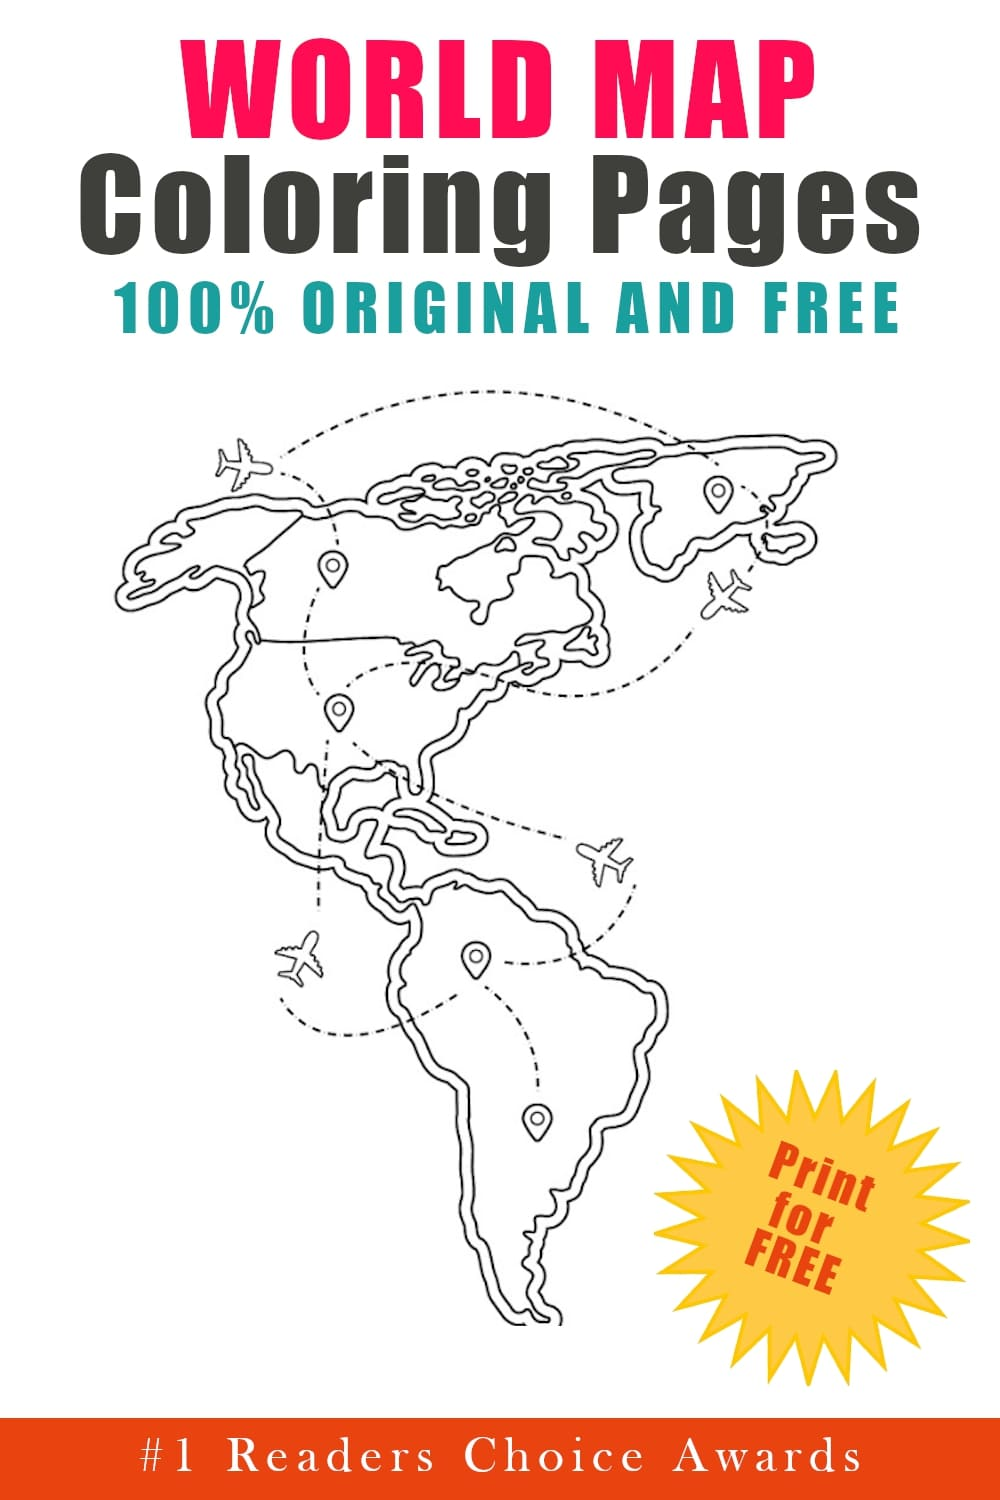 original and free world map coloring pages